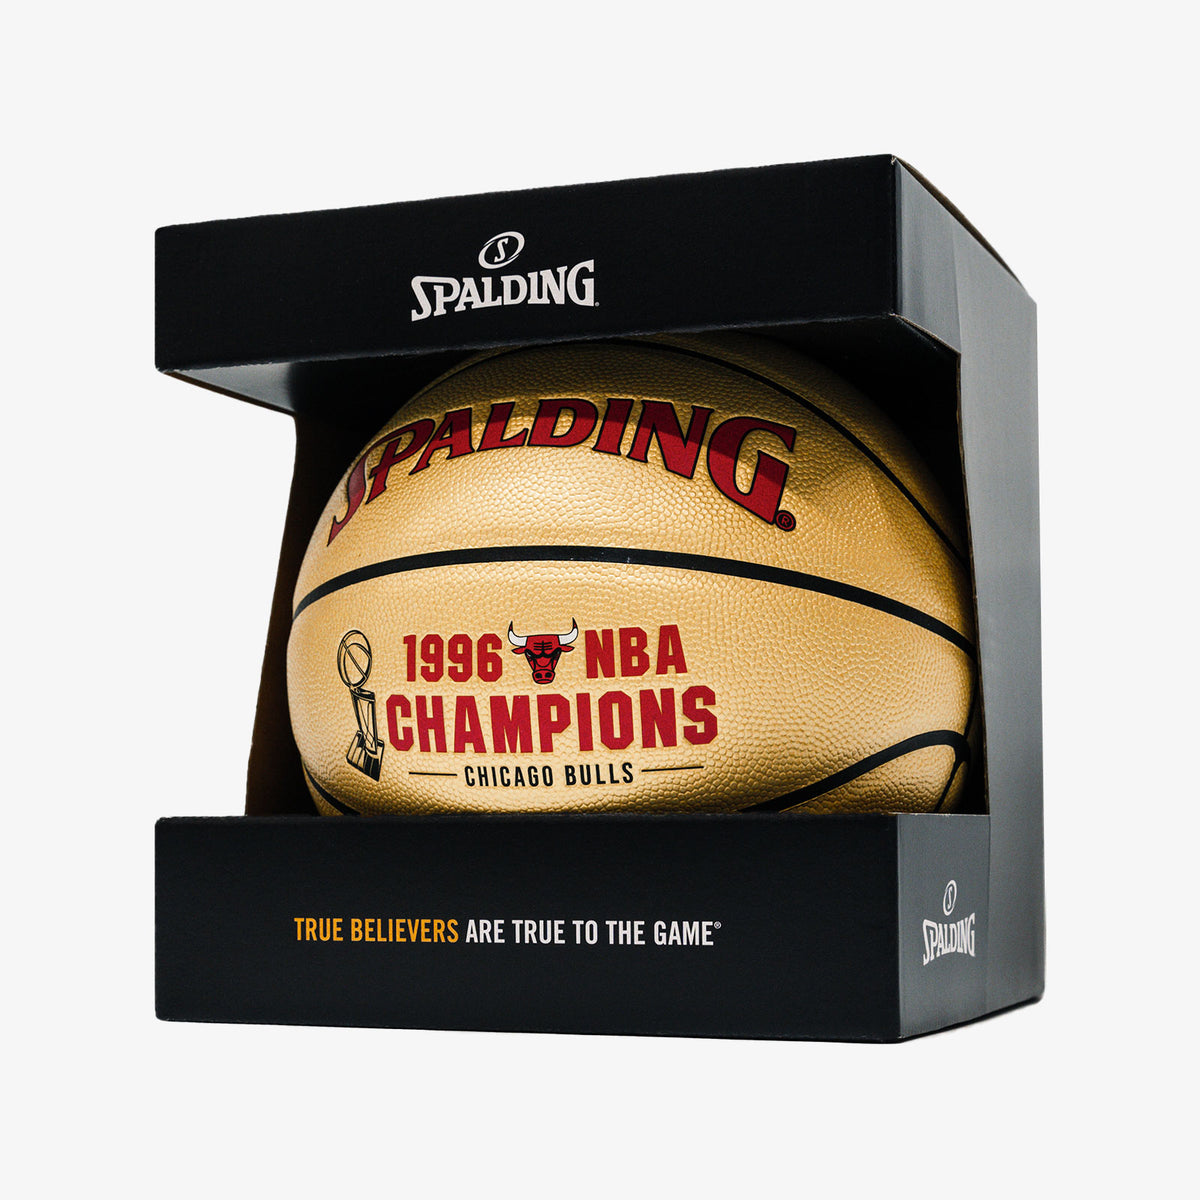 Spalding Chicago Bulls 1996 Championship Indoor/Outdoor Composite Leather Basketball - Limited Edition - Gold - Size 7